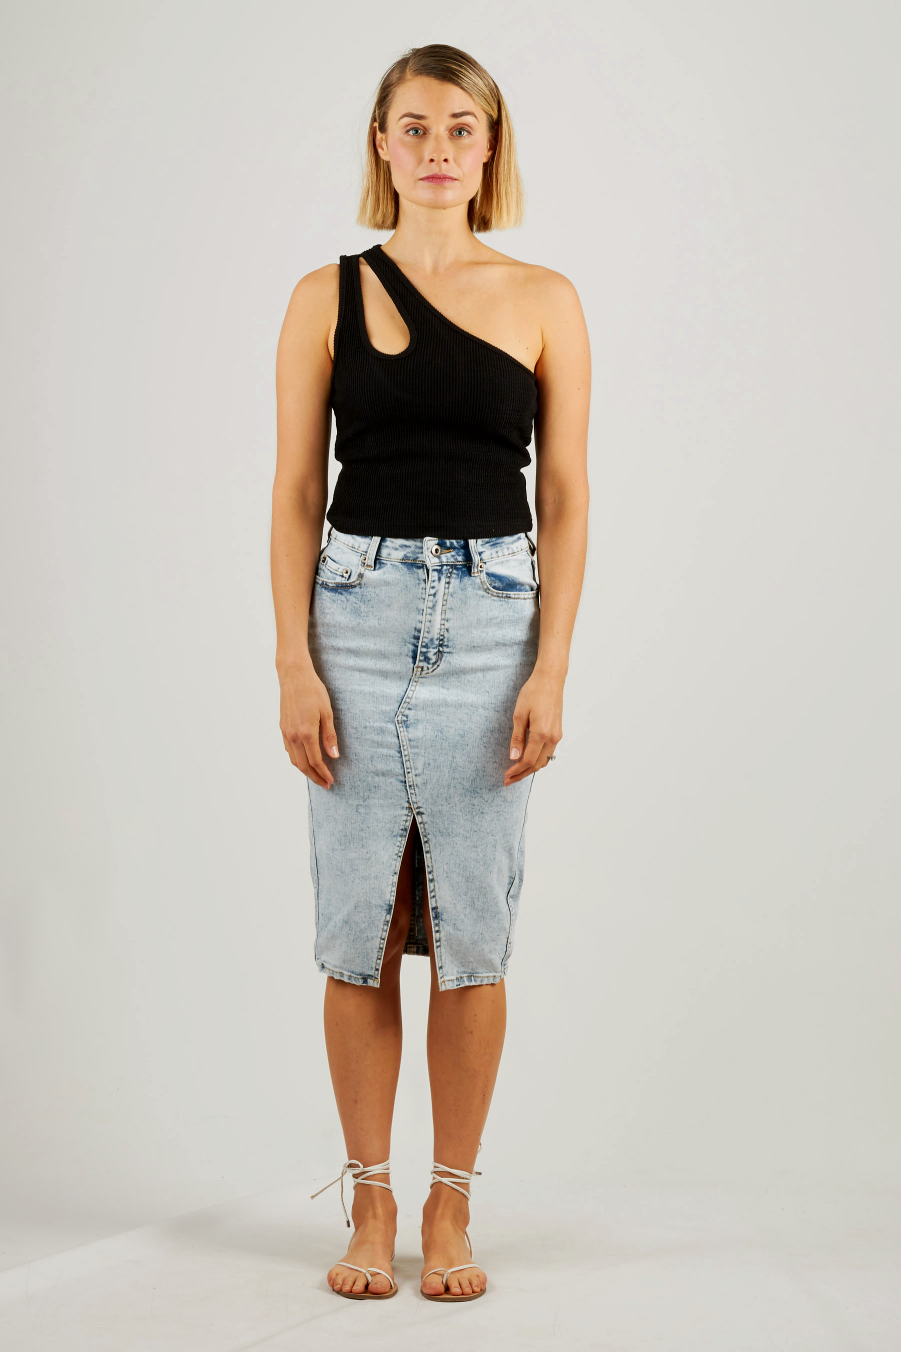 Black asymmetrical top with cut out detail on shoulders